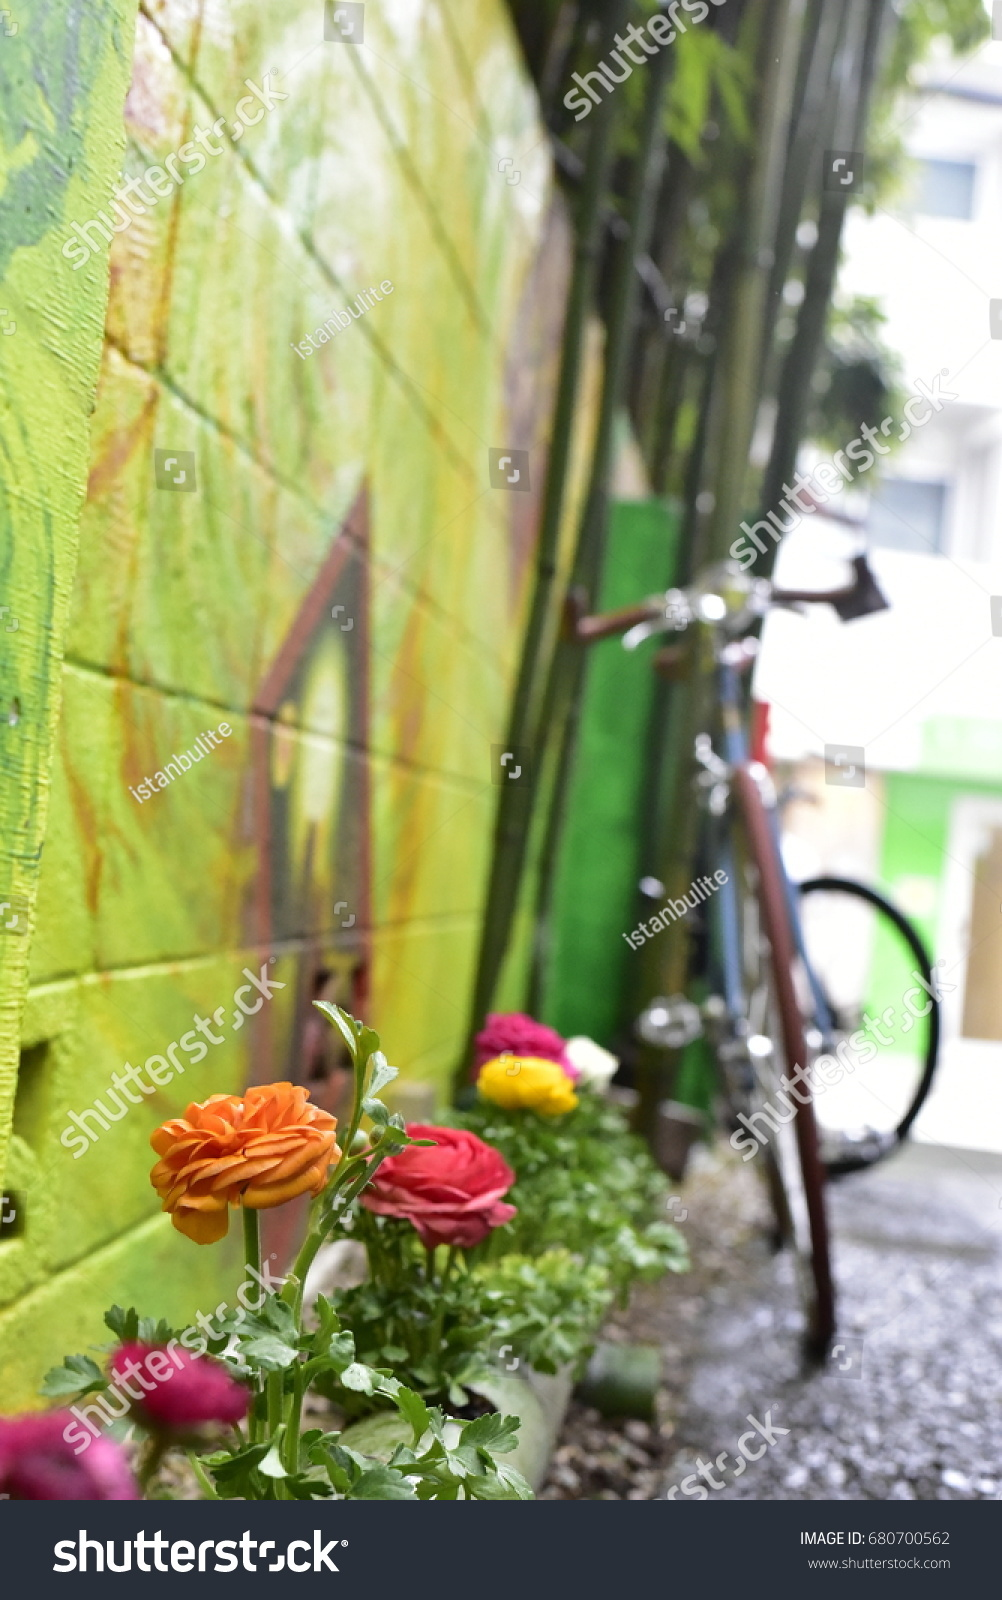 Flowers Wall Art Bicycle Stock Photo 680700562 - Shutterstock